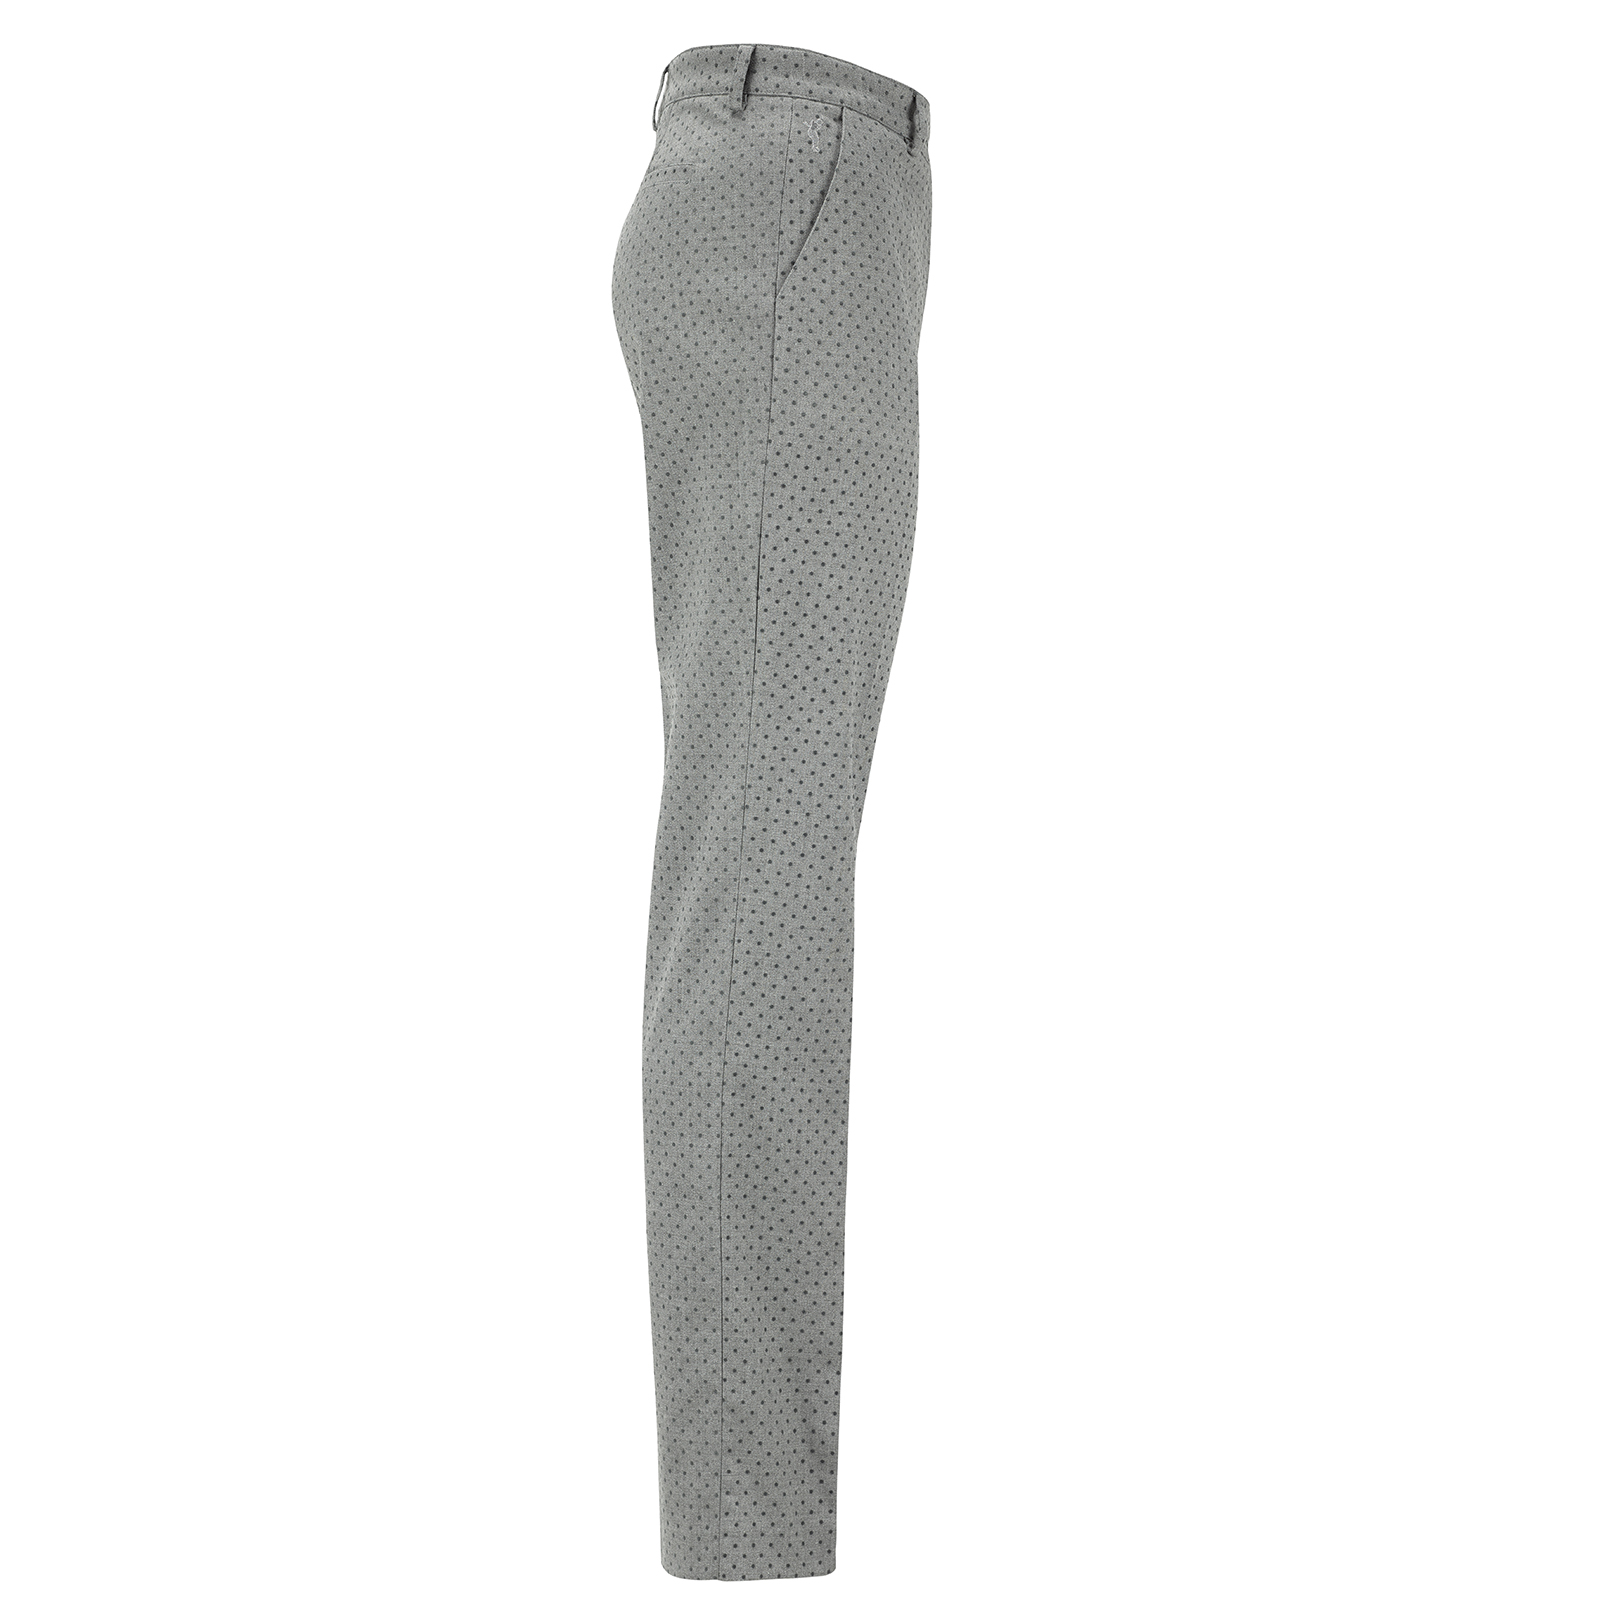 Damen Stretch-Golfhose mit gepunktetem Design